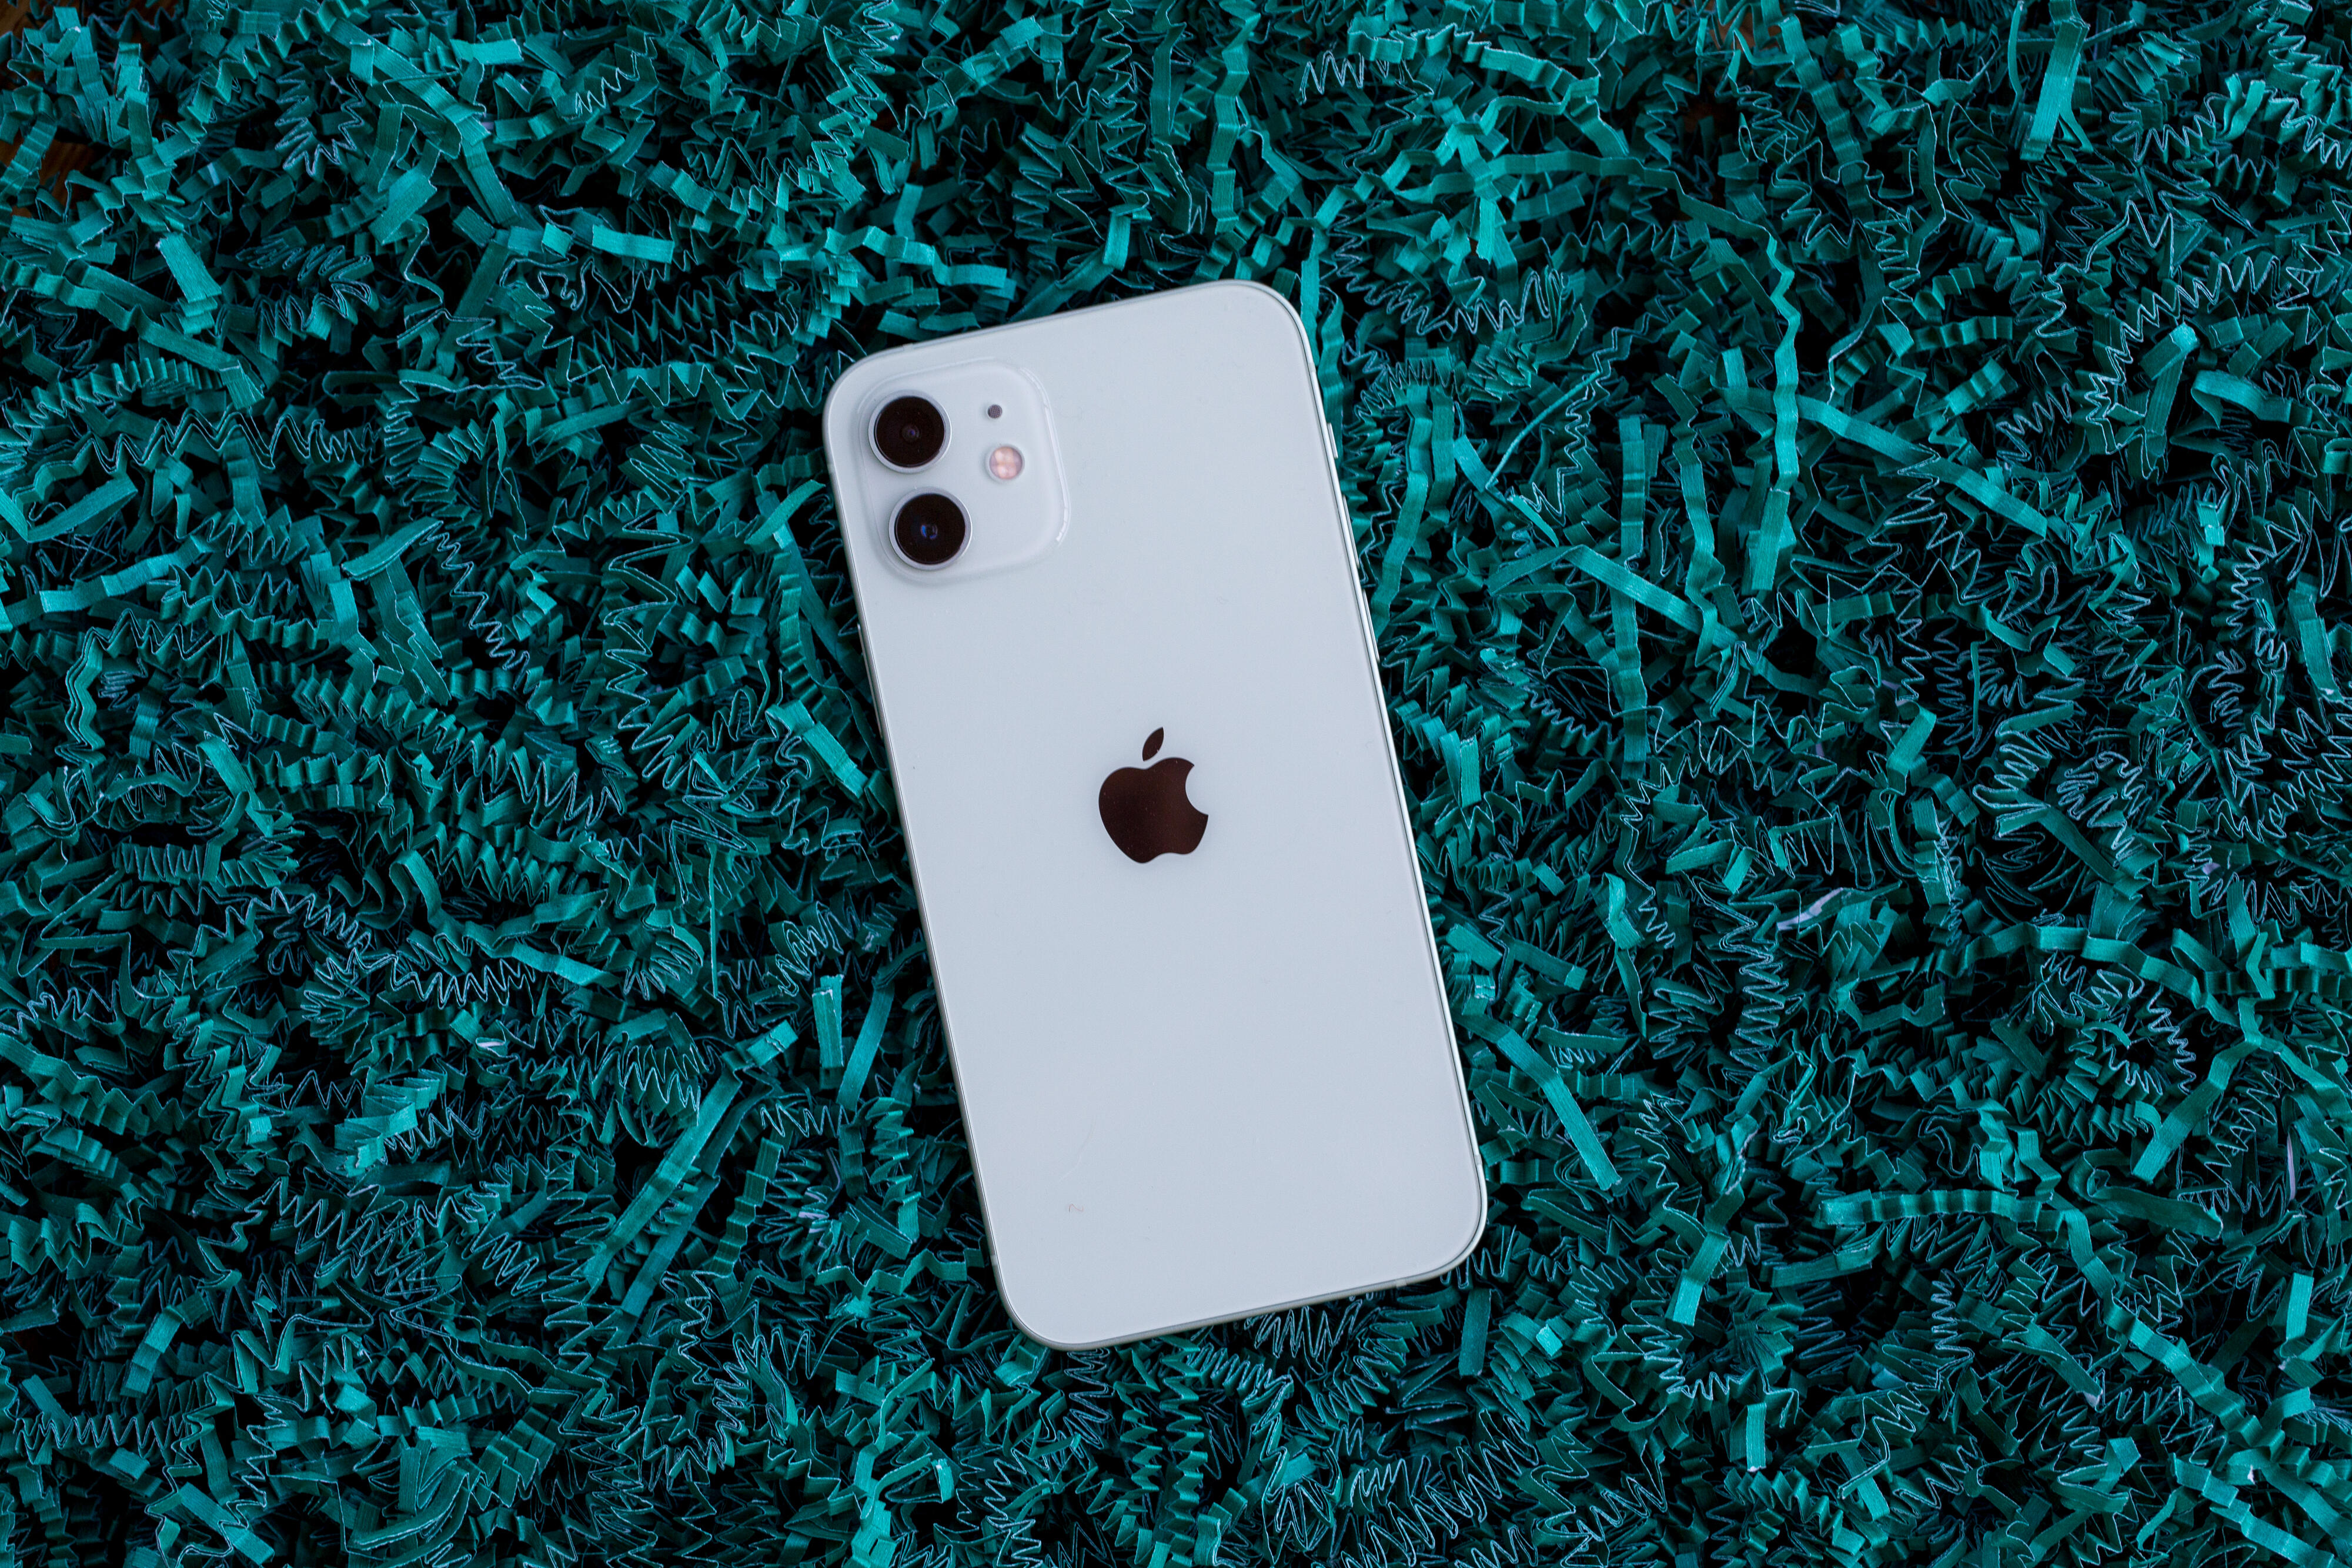 Apple takes back crown as world's No. 1 phone maker, analyst says